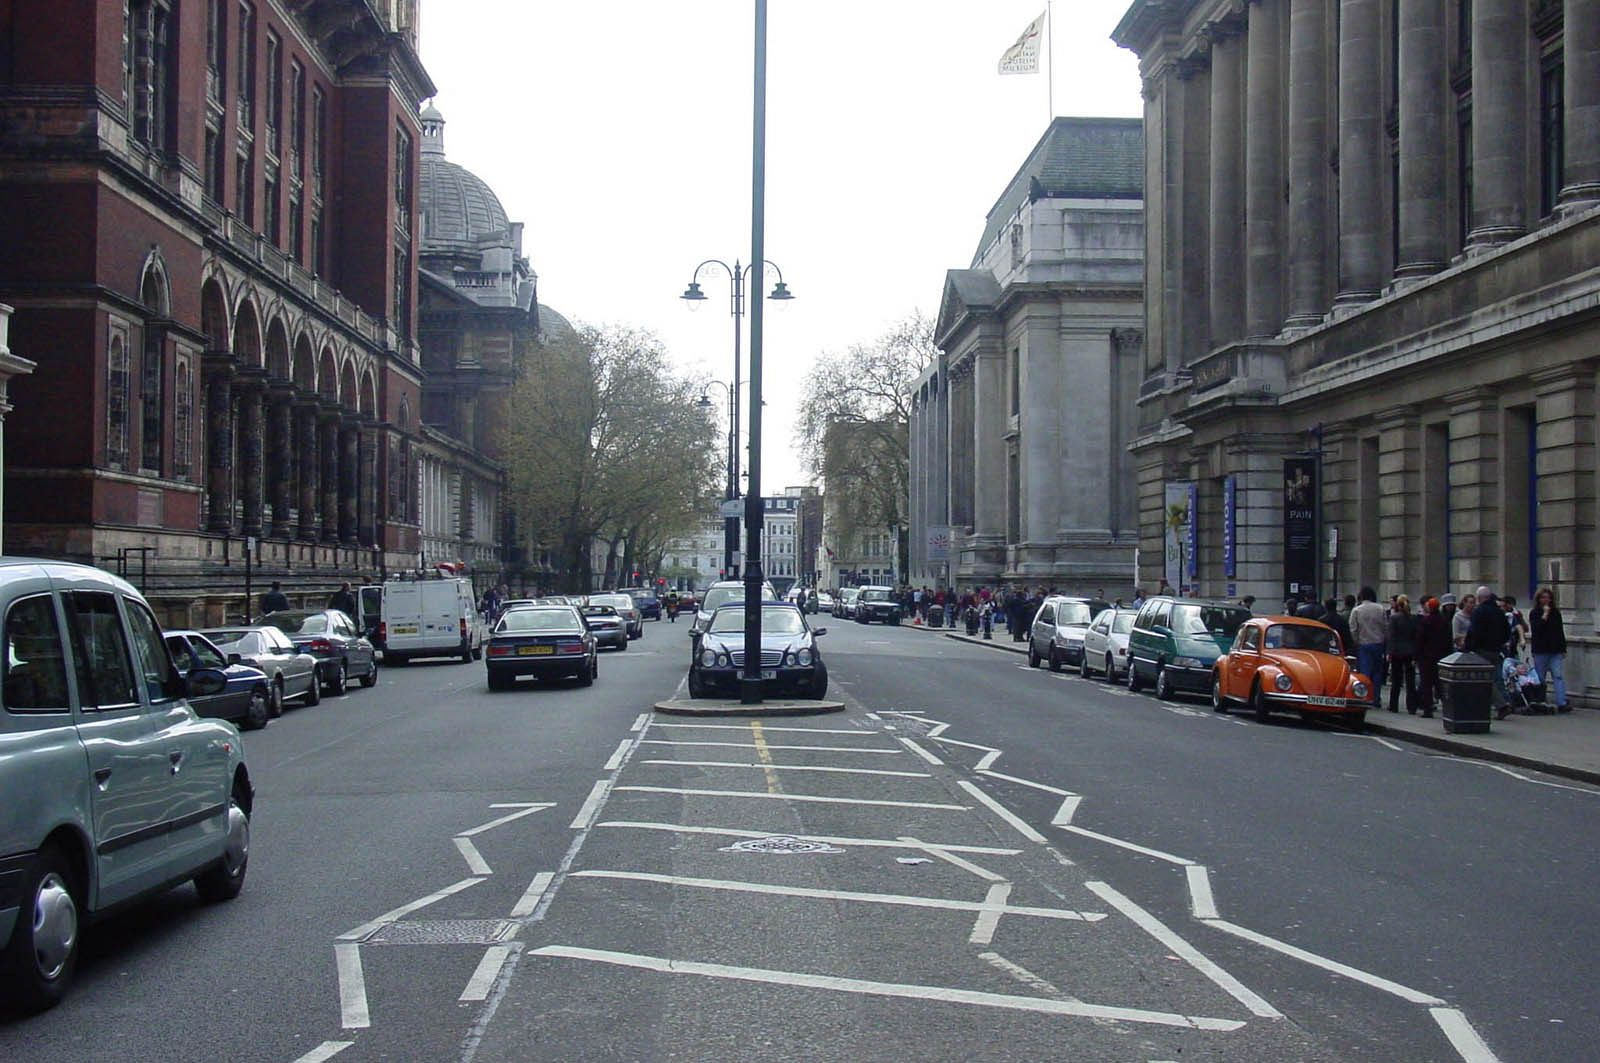 Exhibition Road, London, before _shared space_. Photo: BHB